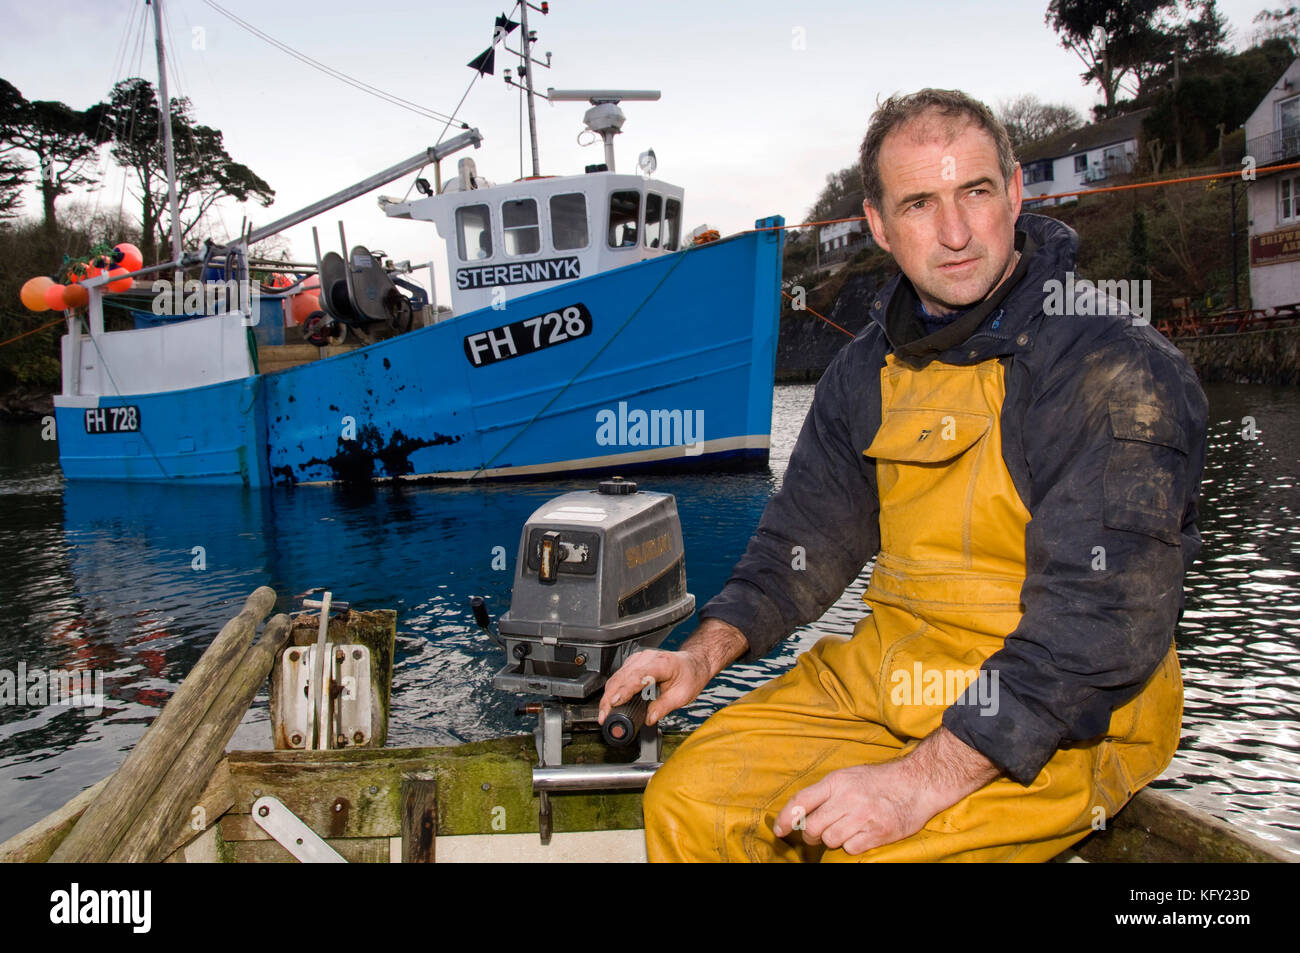 Helford quay on the Helford Estuary, Cornwall, where fishermen want to build a new quay.  Pix show fisherman David - Stock Image